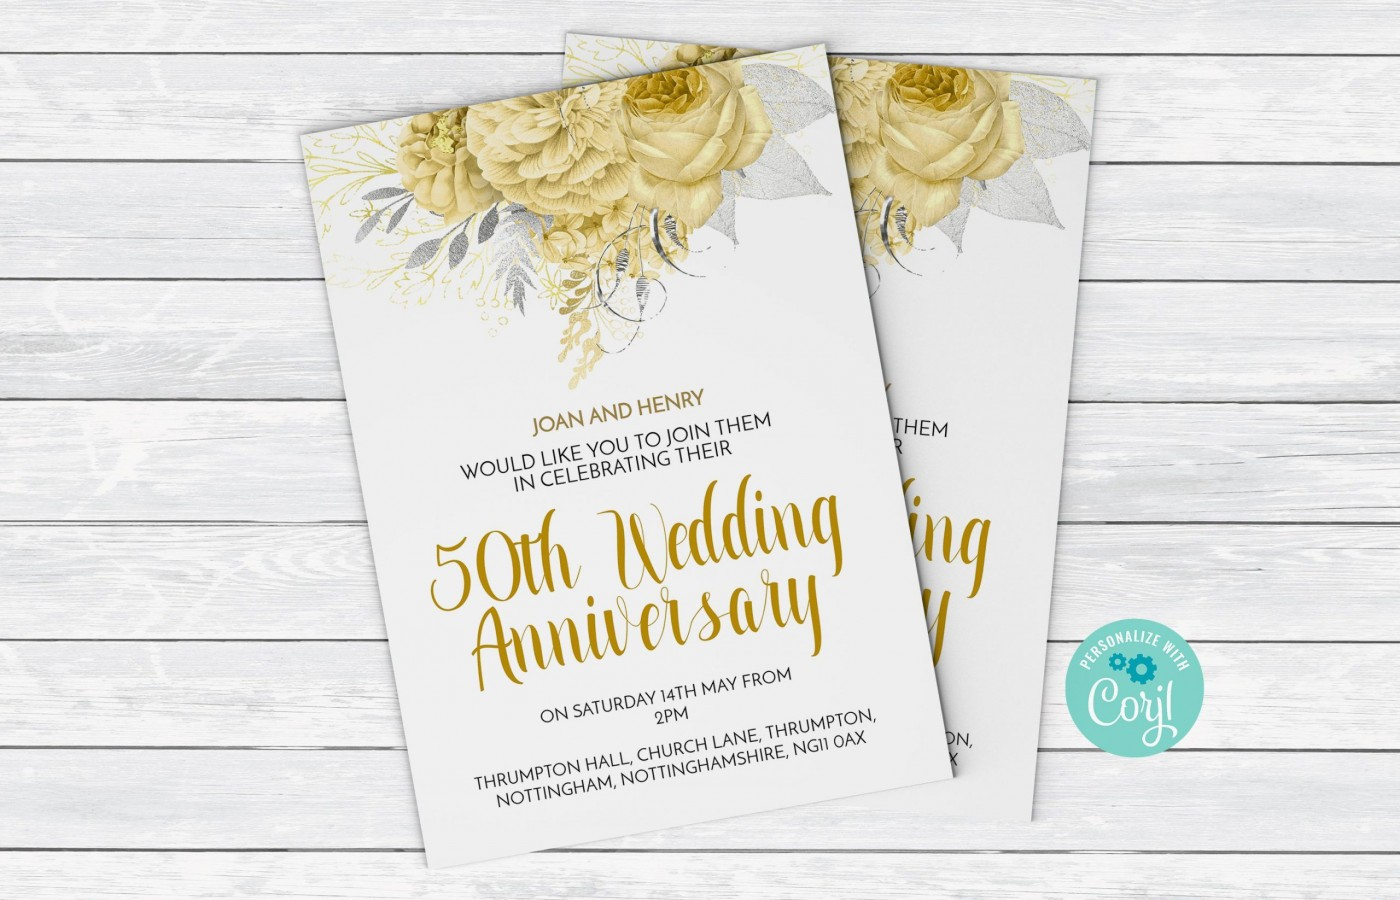 002 Imposing 50th Anniversary Party Invitation Template High Resolution  Wedding Free Download Microsoft Word1400